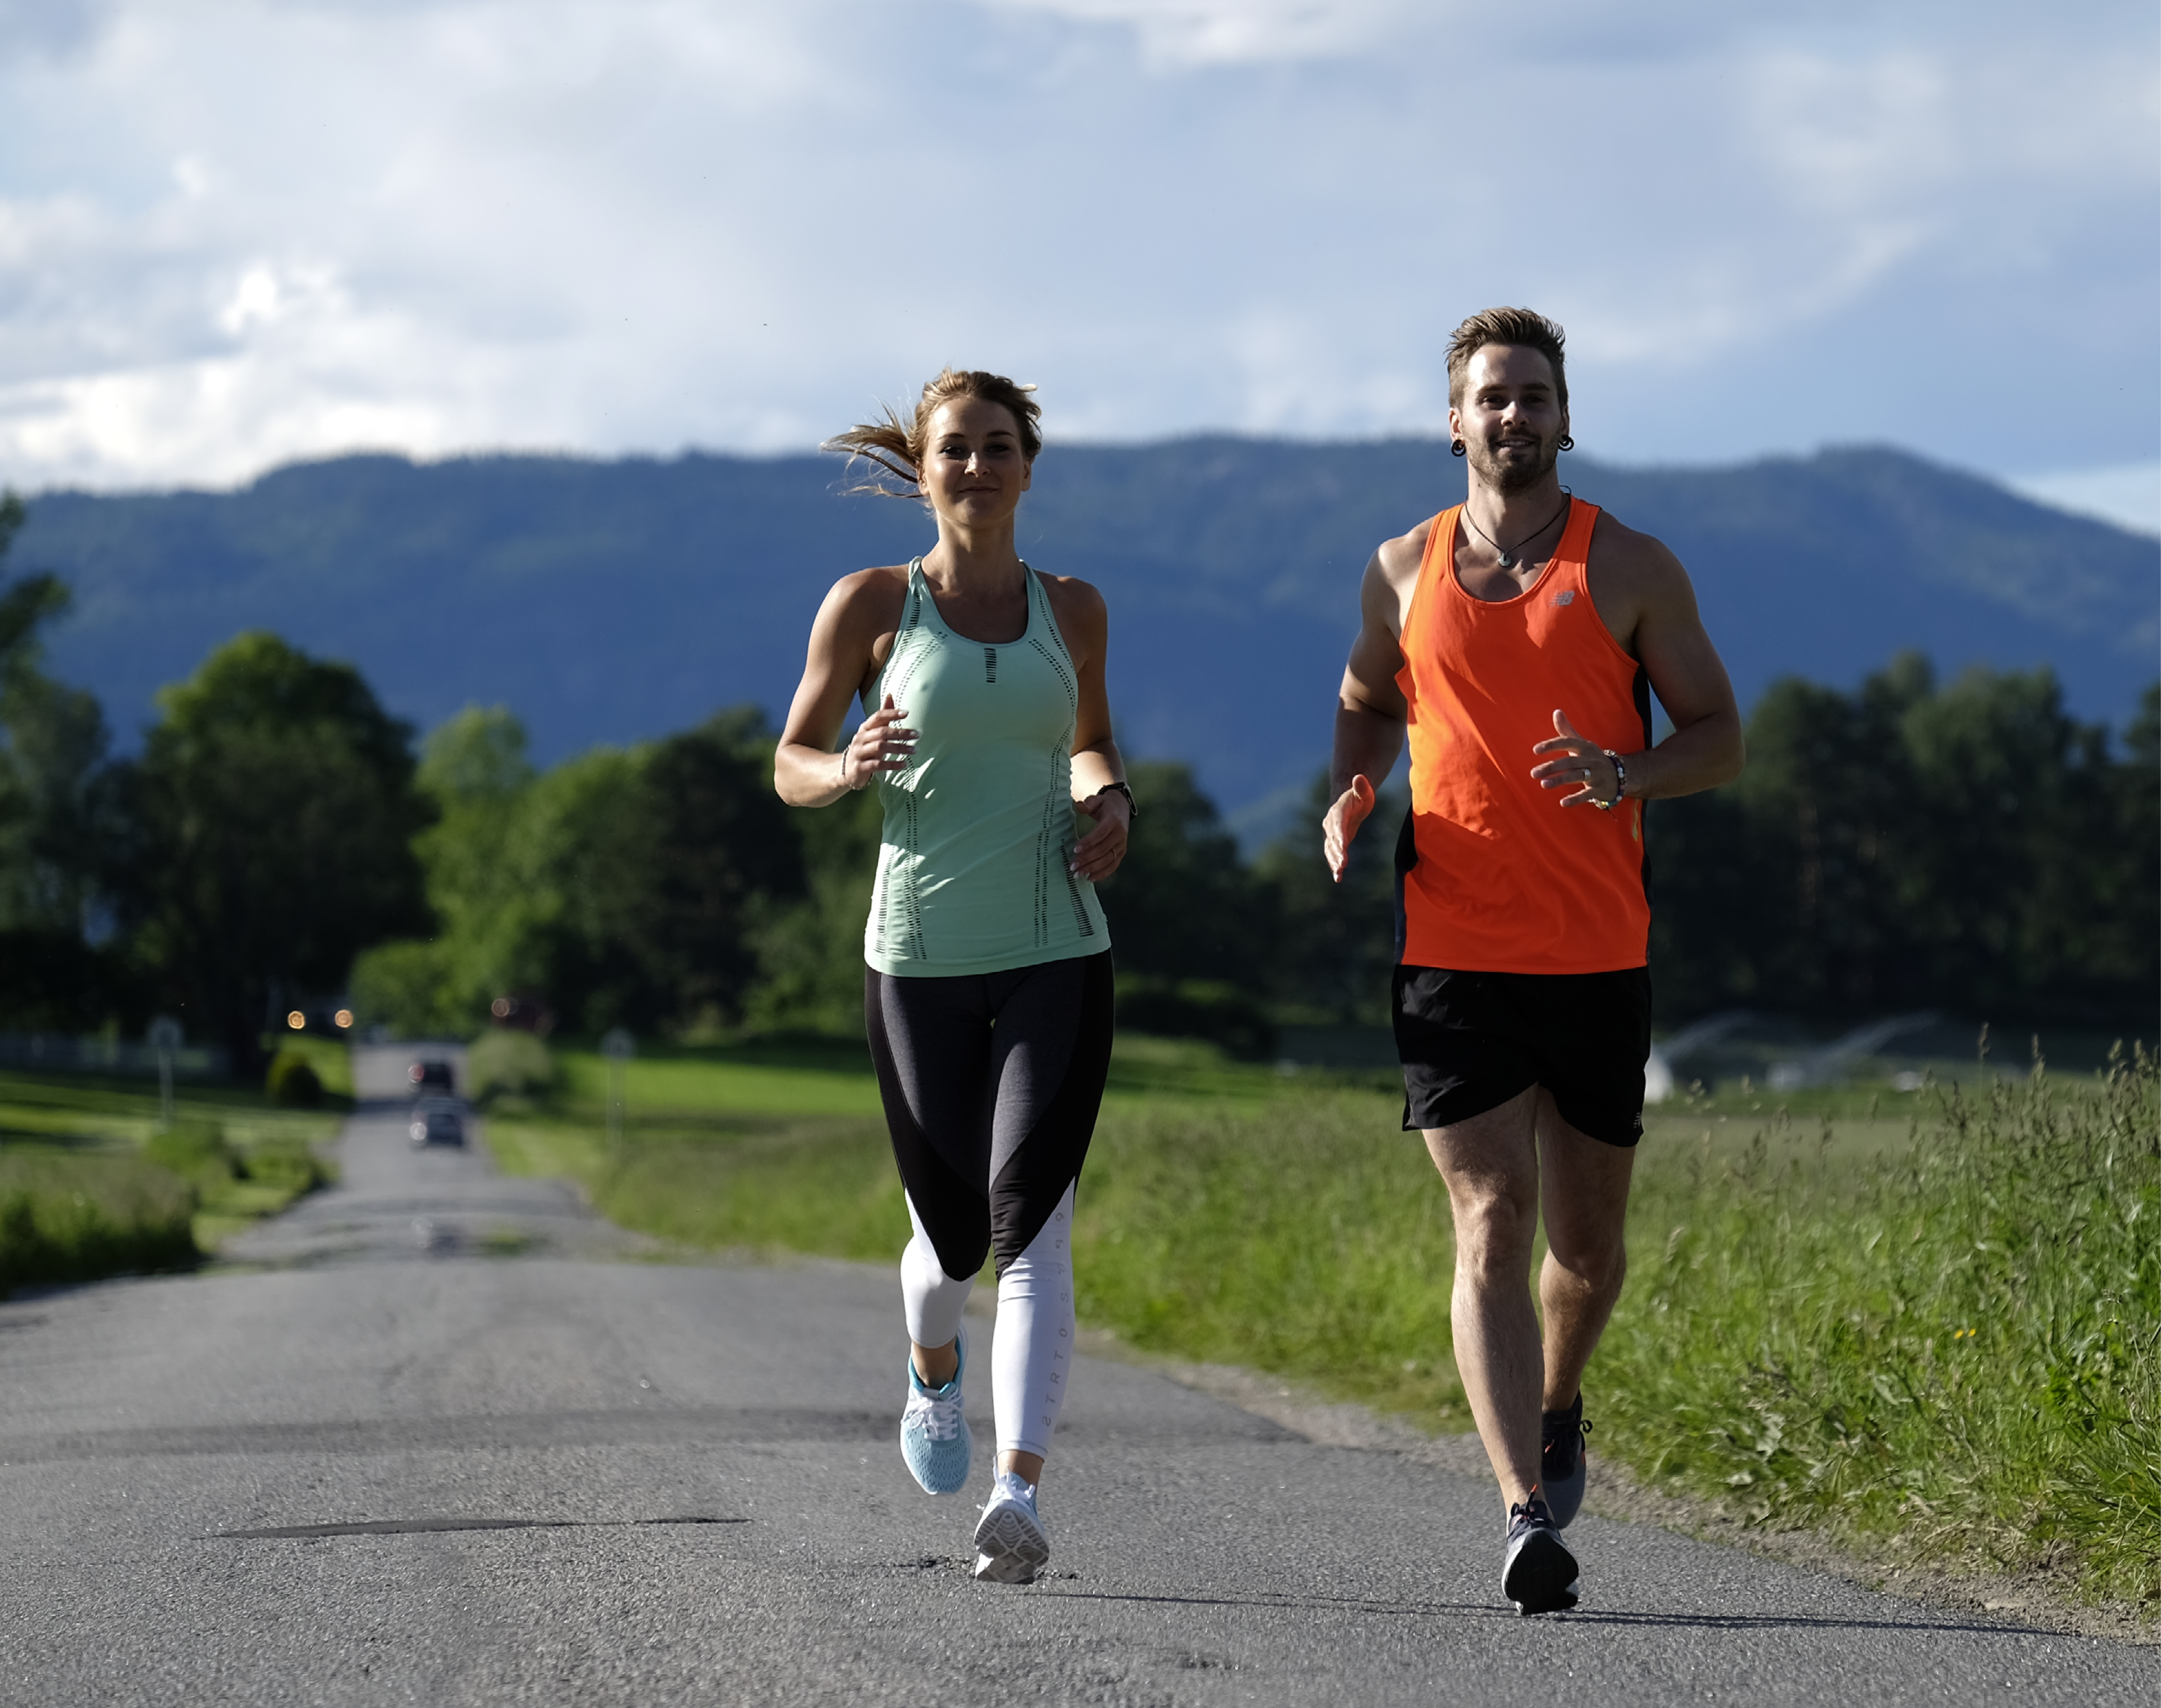 lose weight in 10 days, Marianne and Axel running